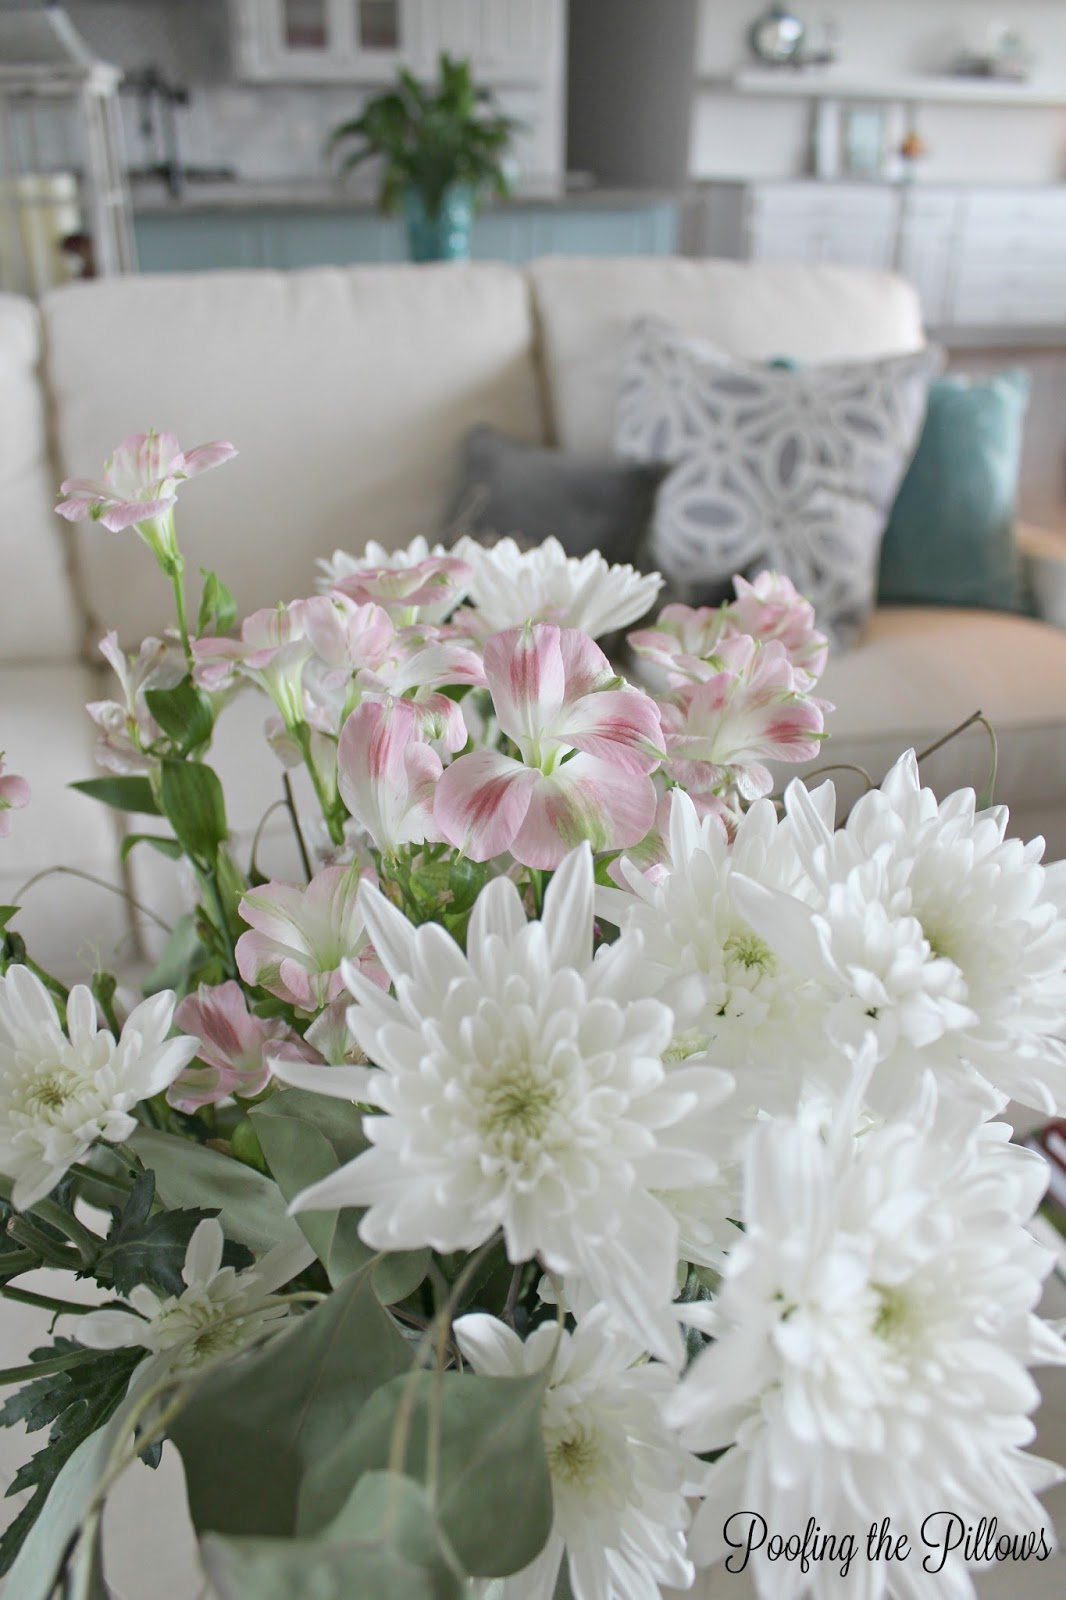 fresh flowers and pillows for fall decorating